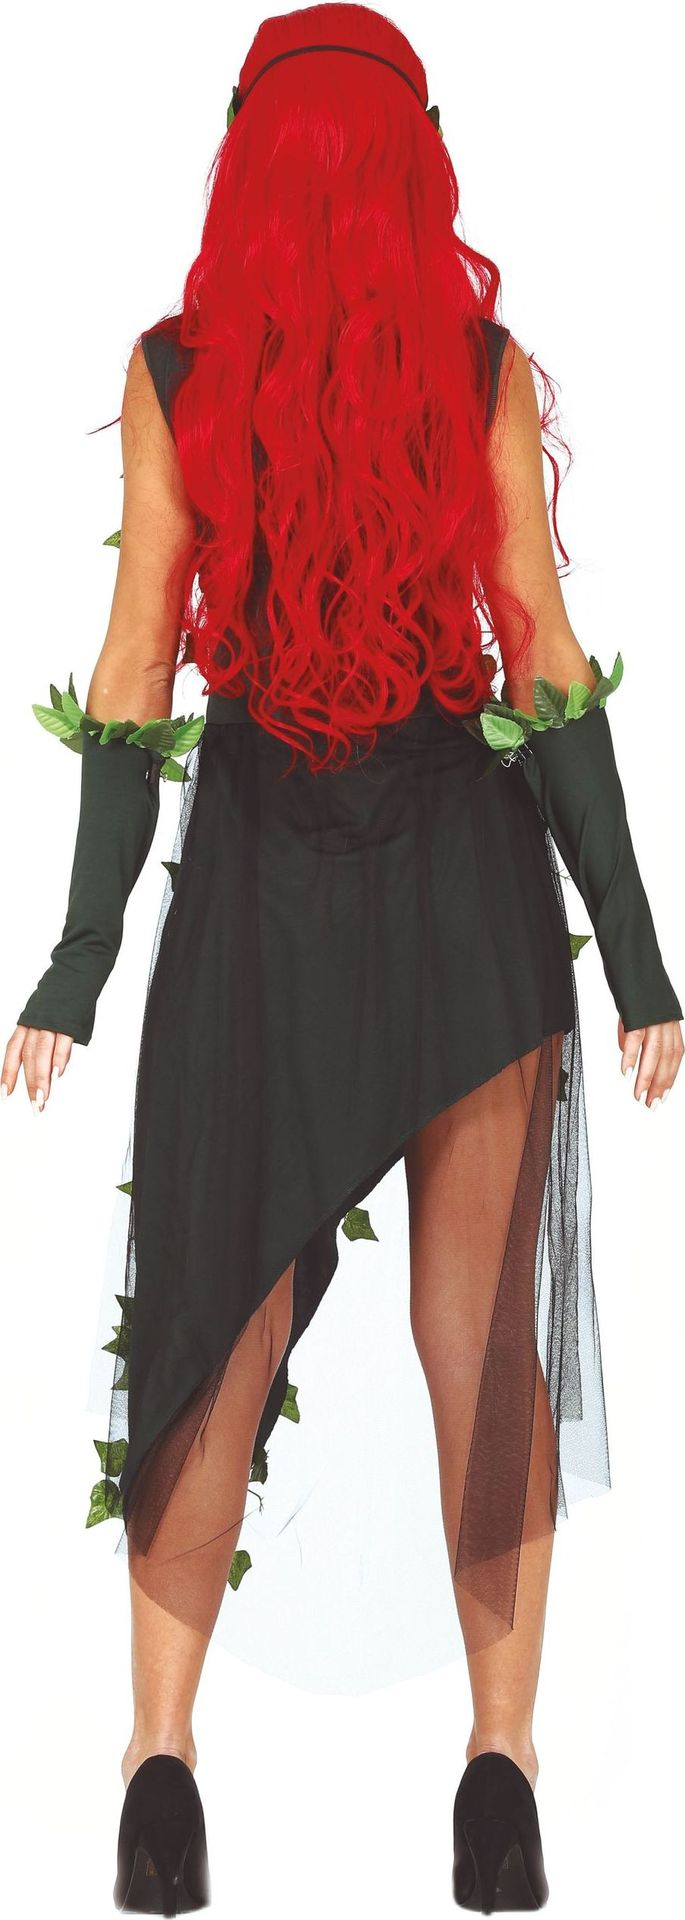 Poison Ivy jurk batman